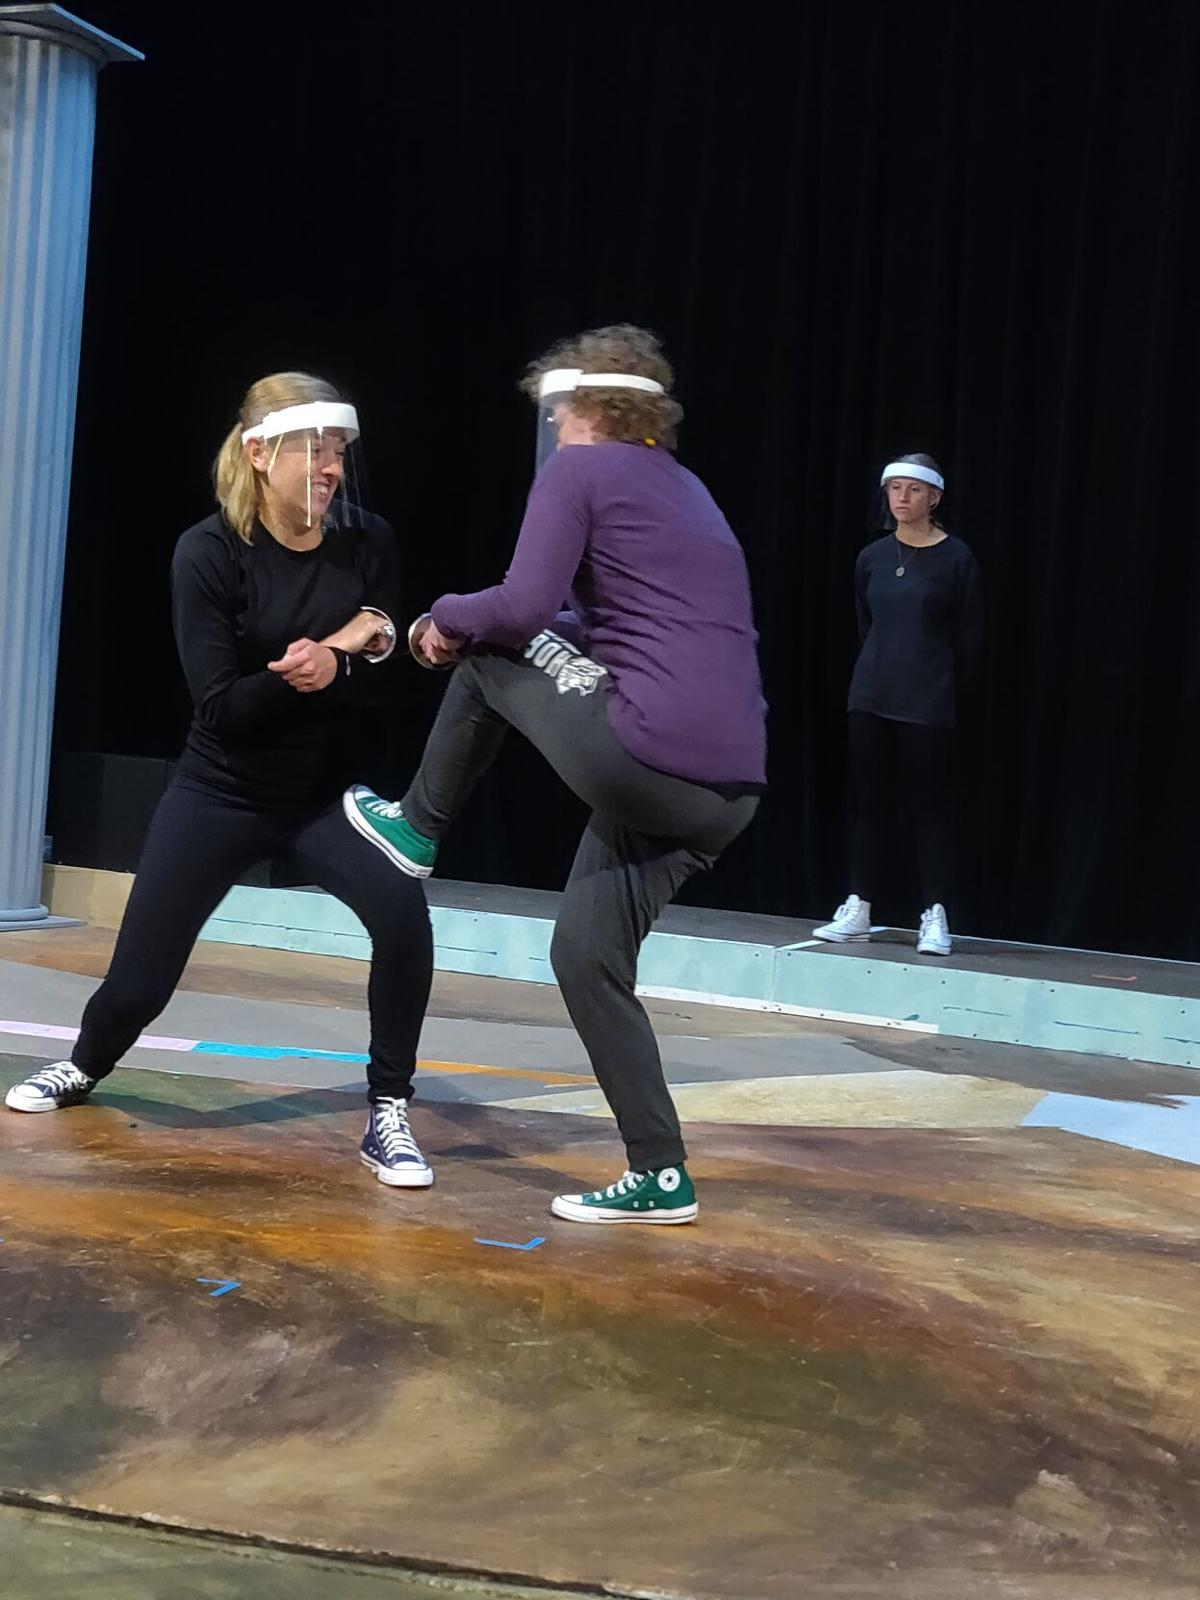 Sequoia Nelson (L) and Nancy Stange (R) practice a sword fighting scene